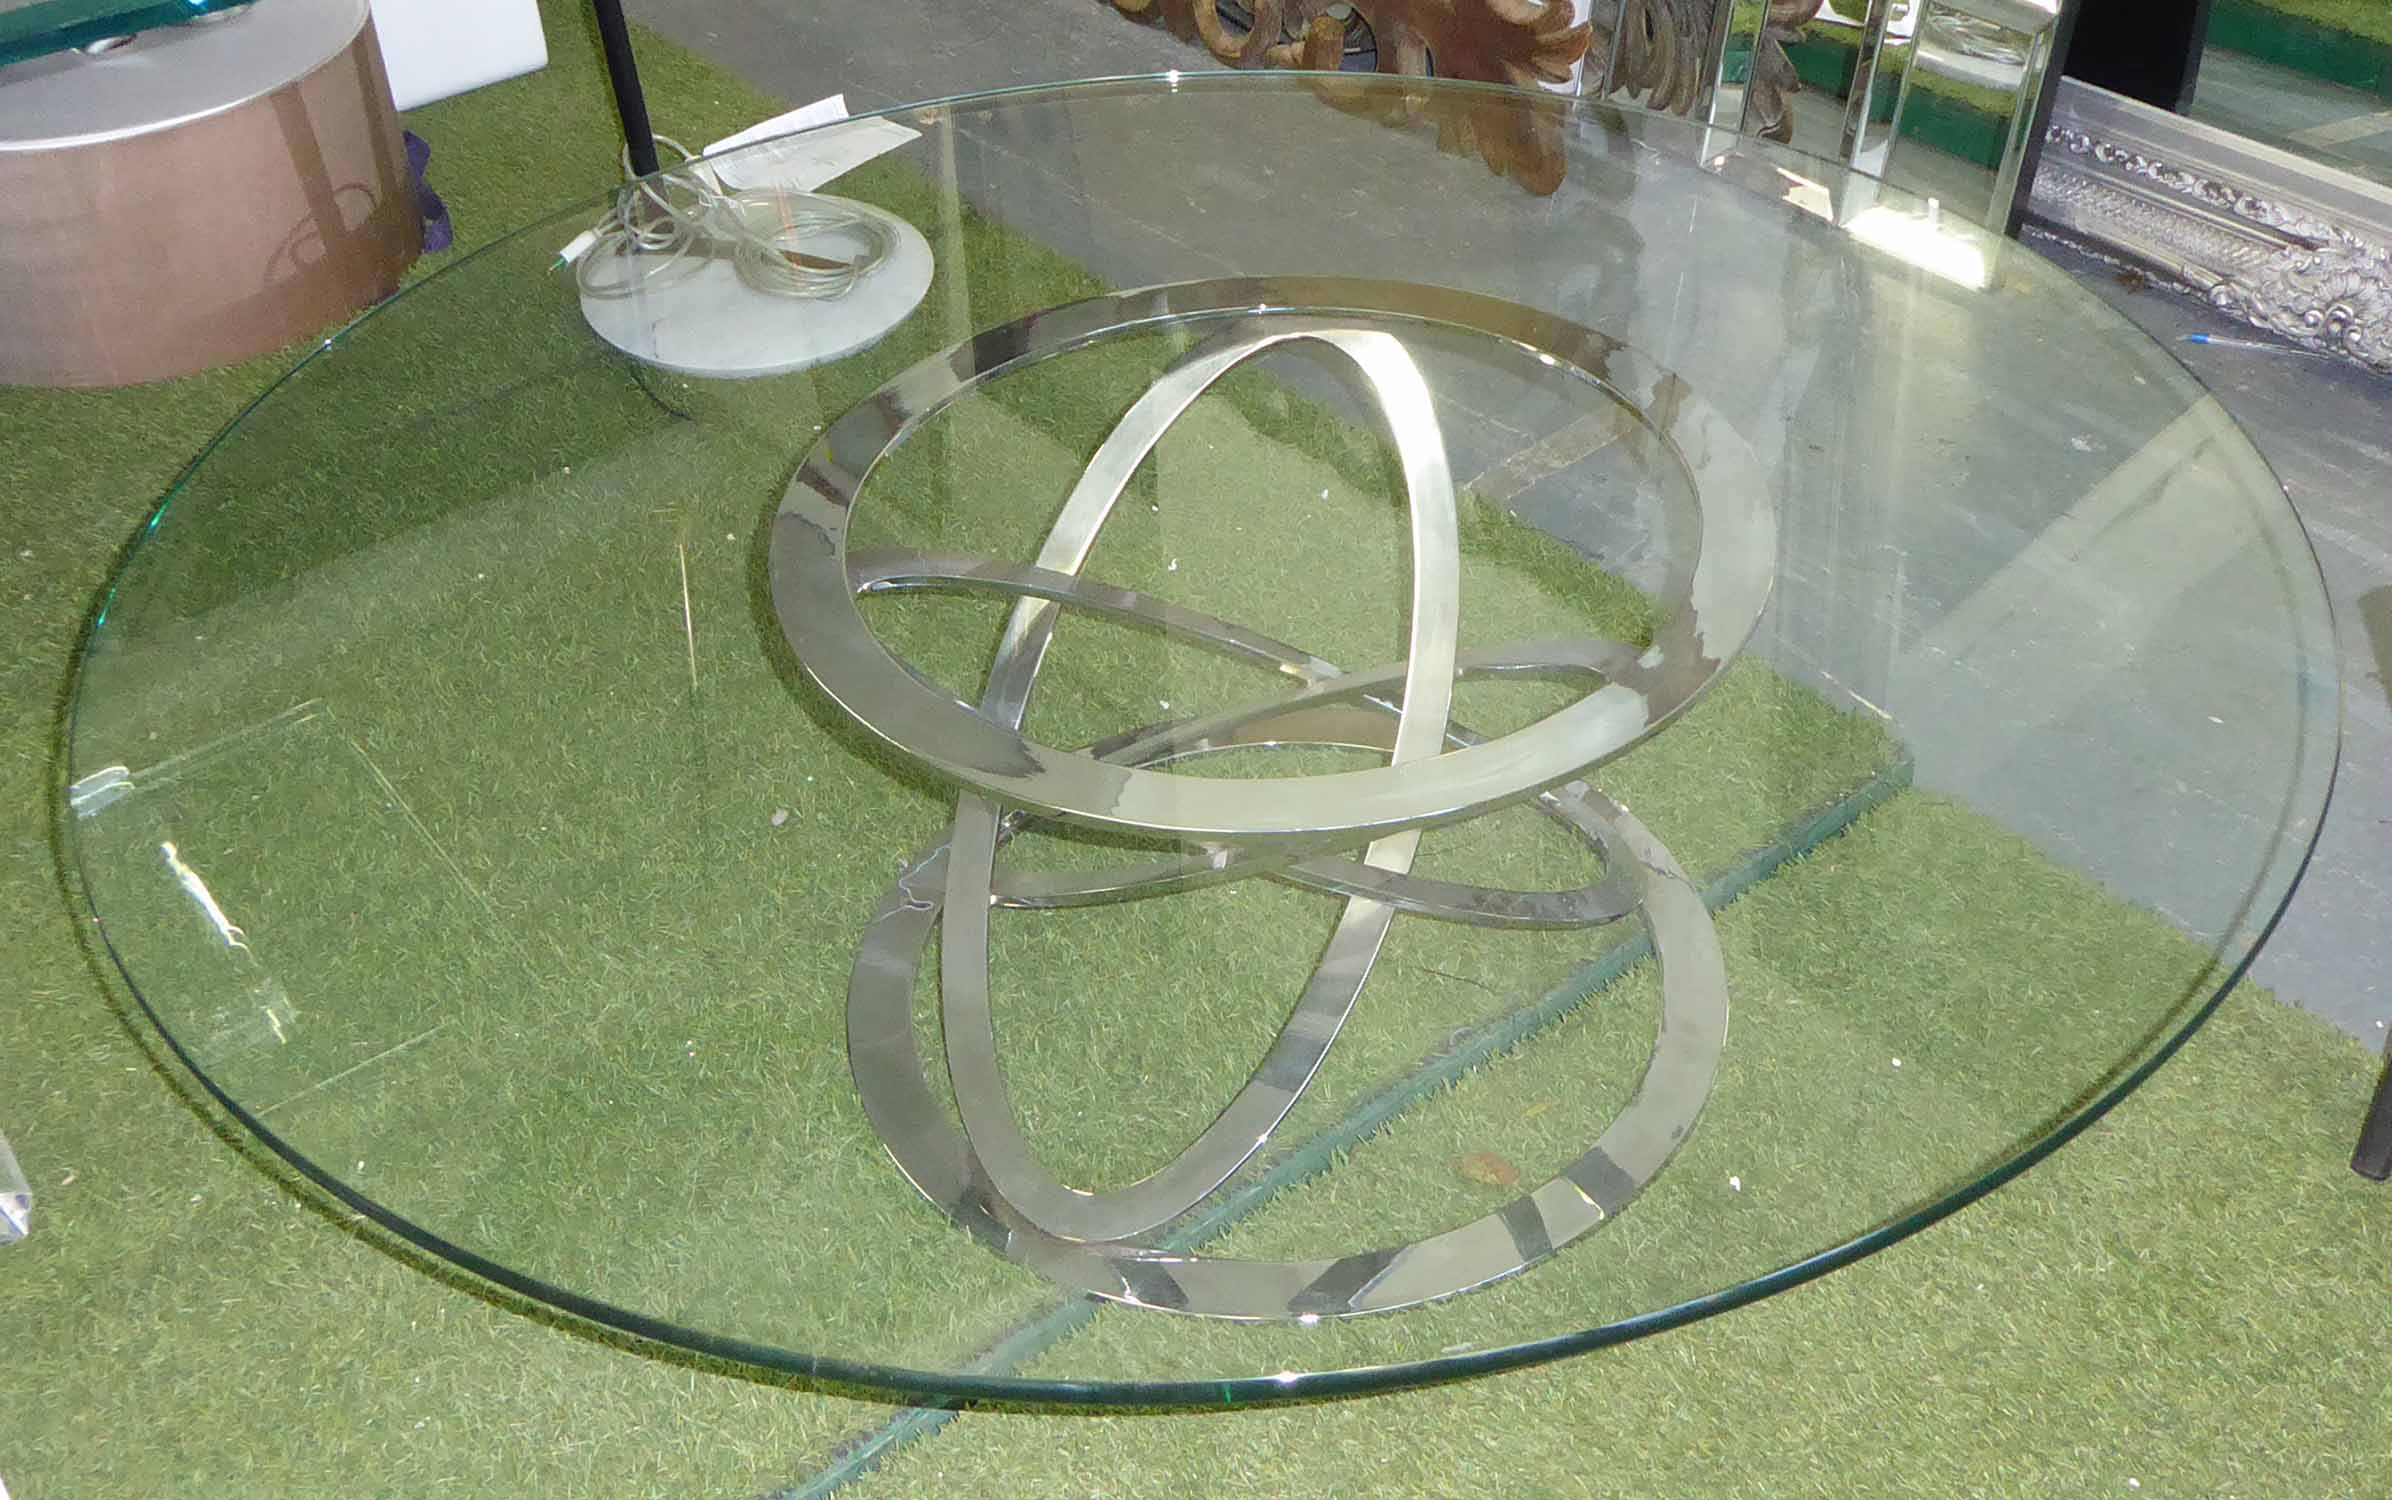 Lot 24 - OCCASIONAL TABLE, circular glass top on a chromed metal base, 129cm diam x 40cm H.